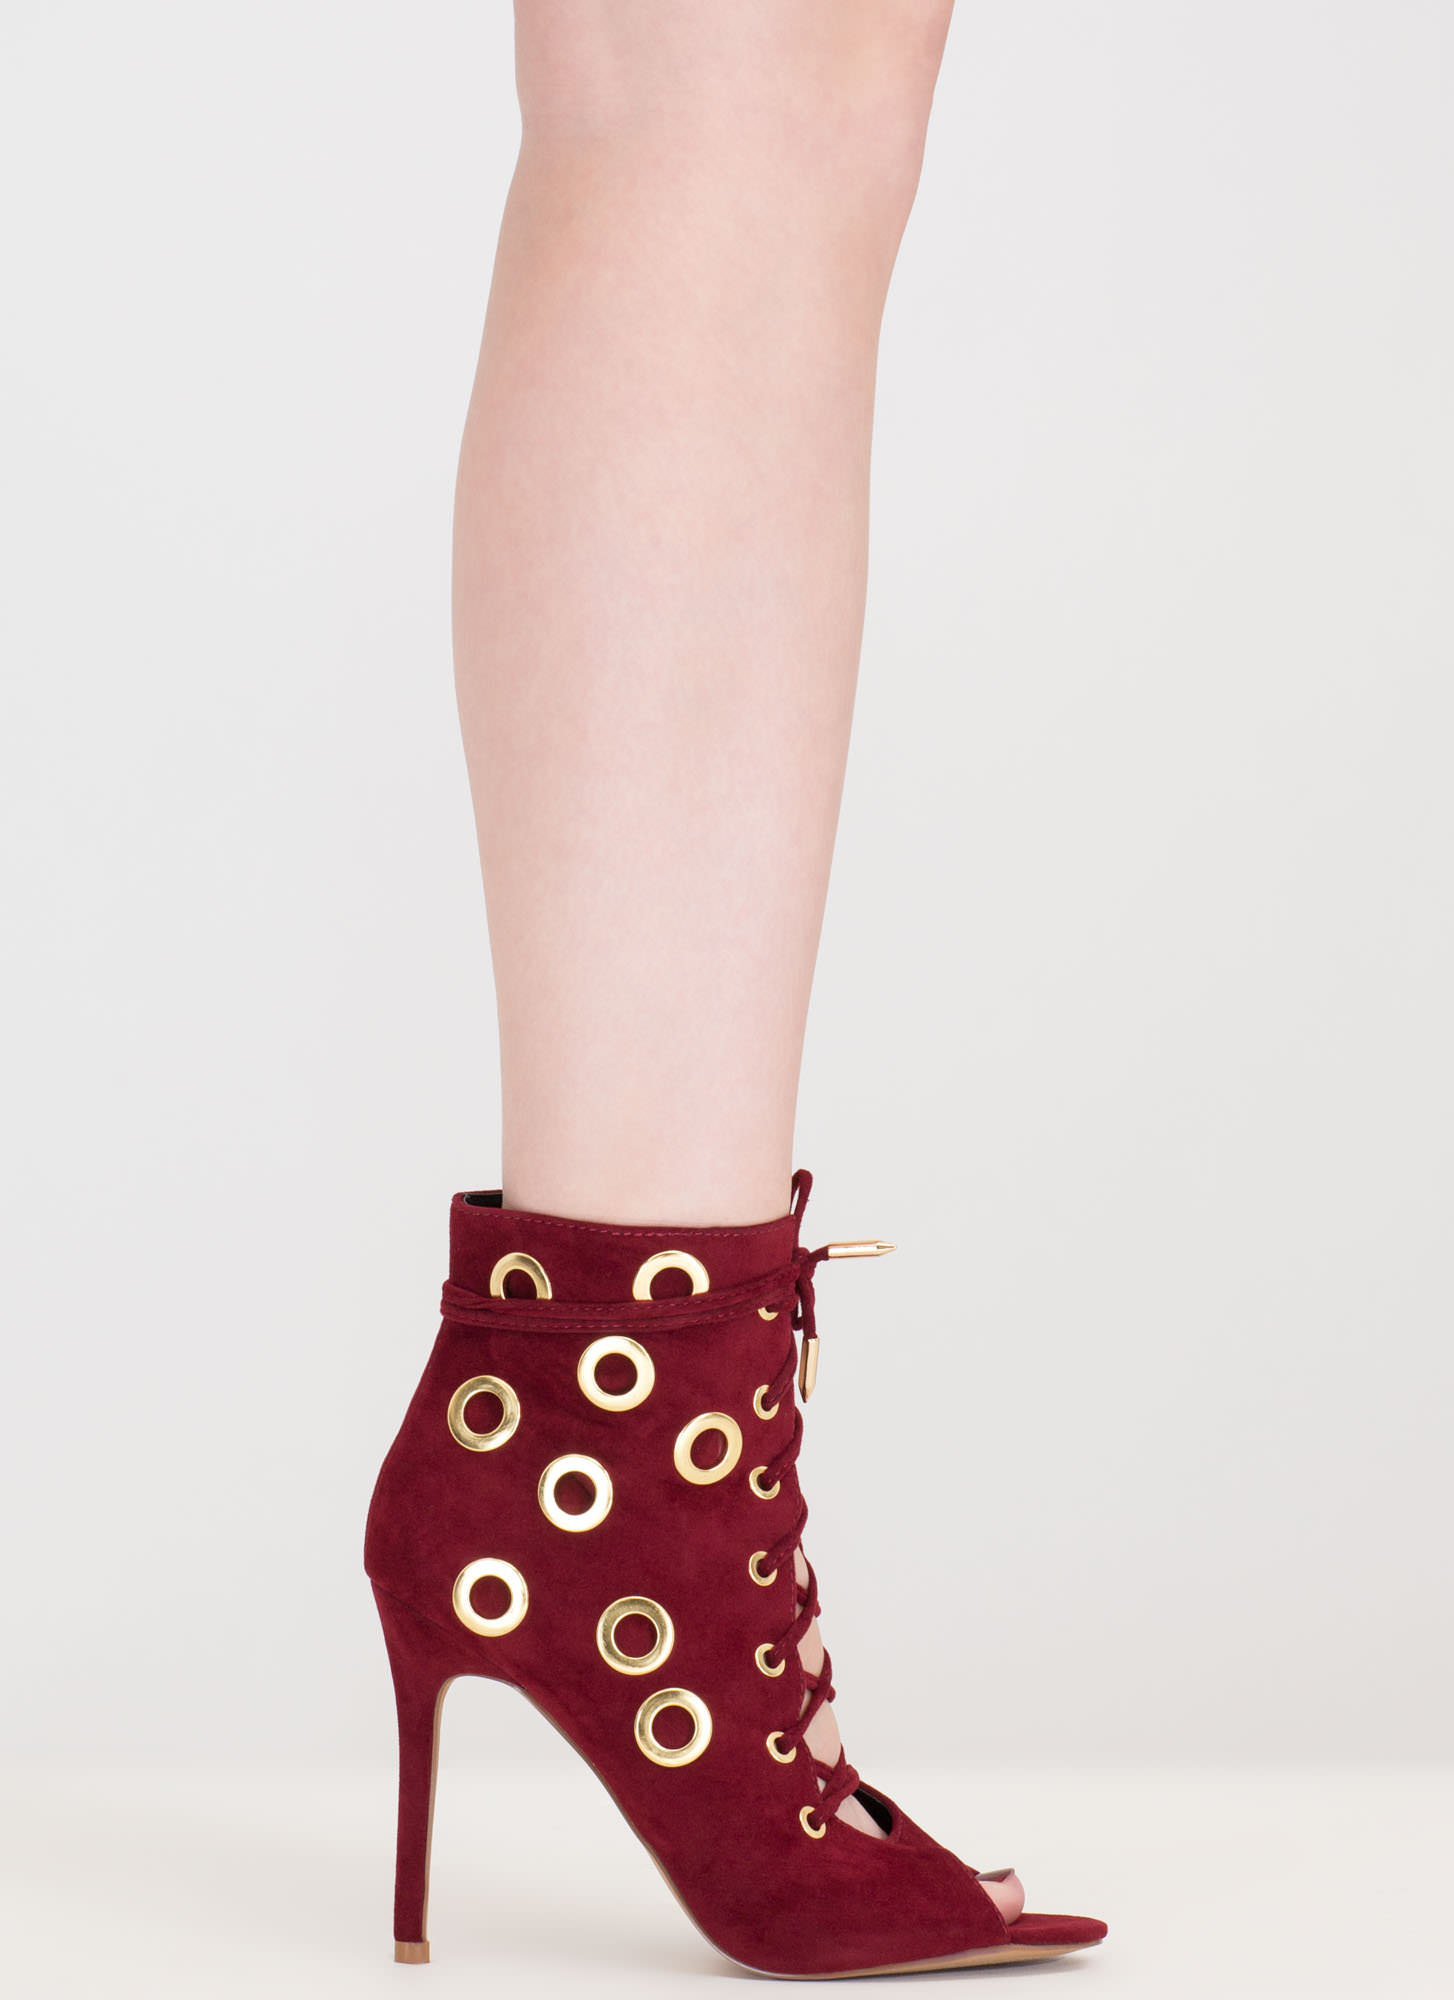 Hole Heart Embellished Lace-Up Booties WINE (Final Sale)